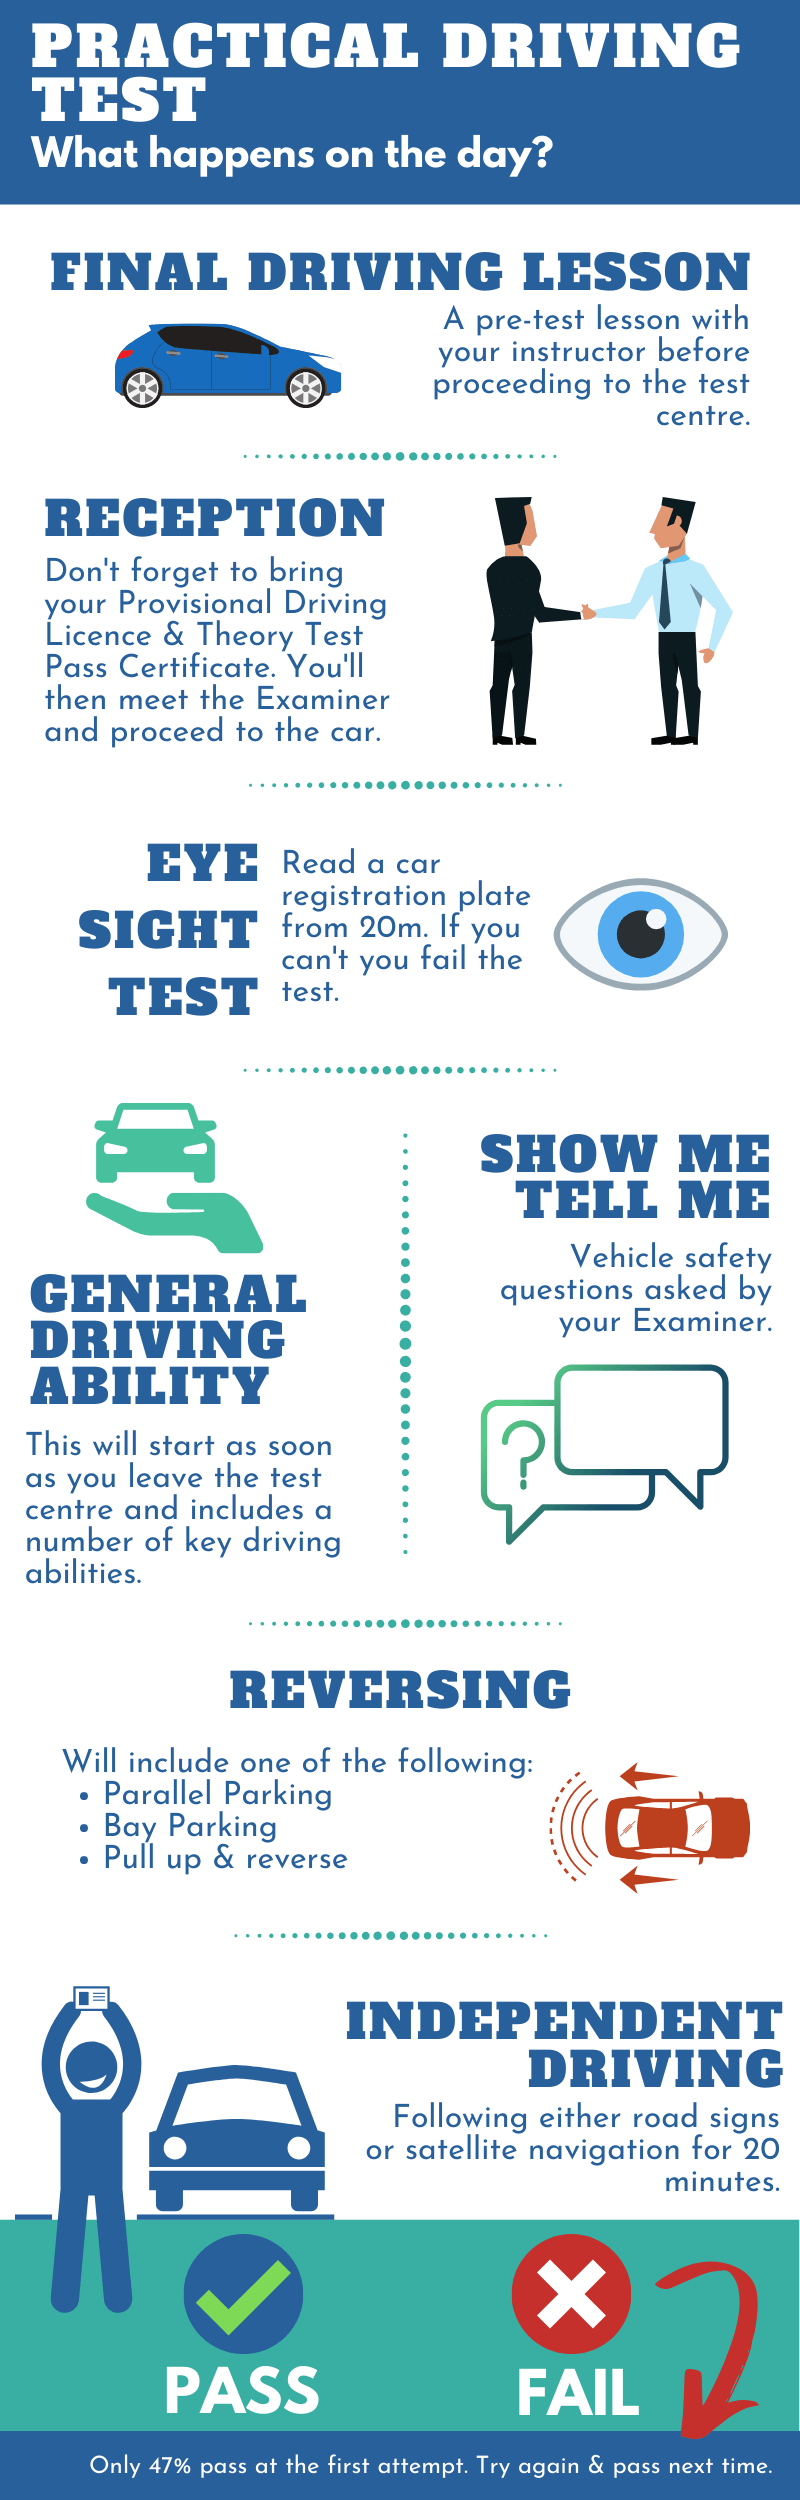 Infographic - Day of the Practical. Driving Test